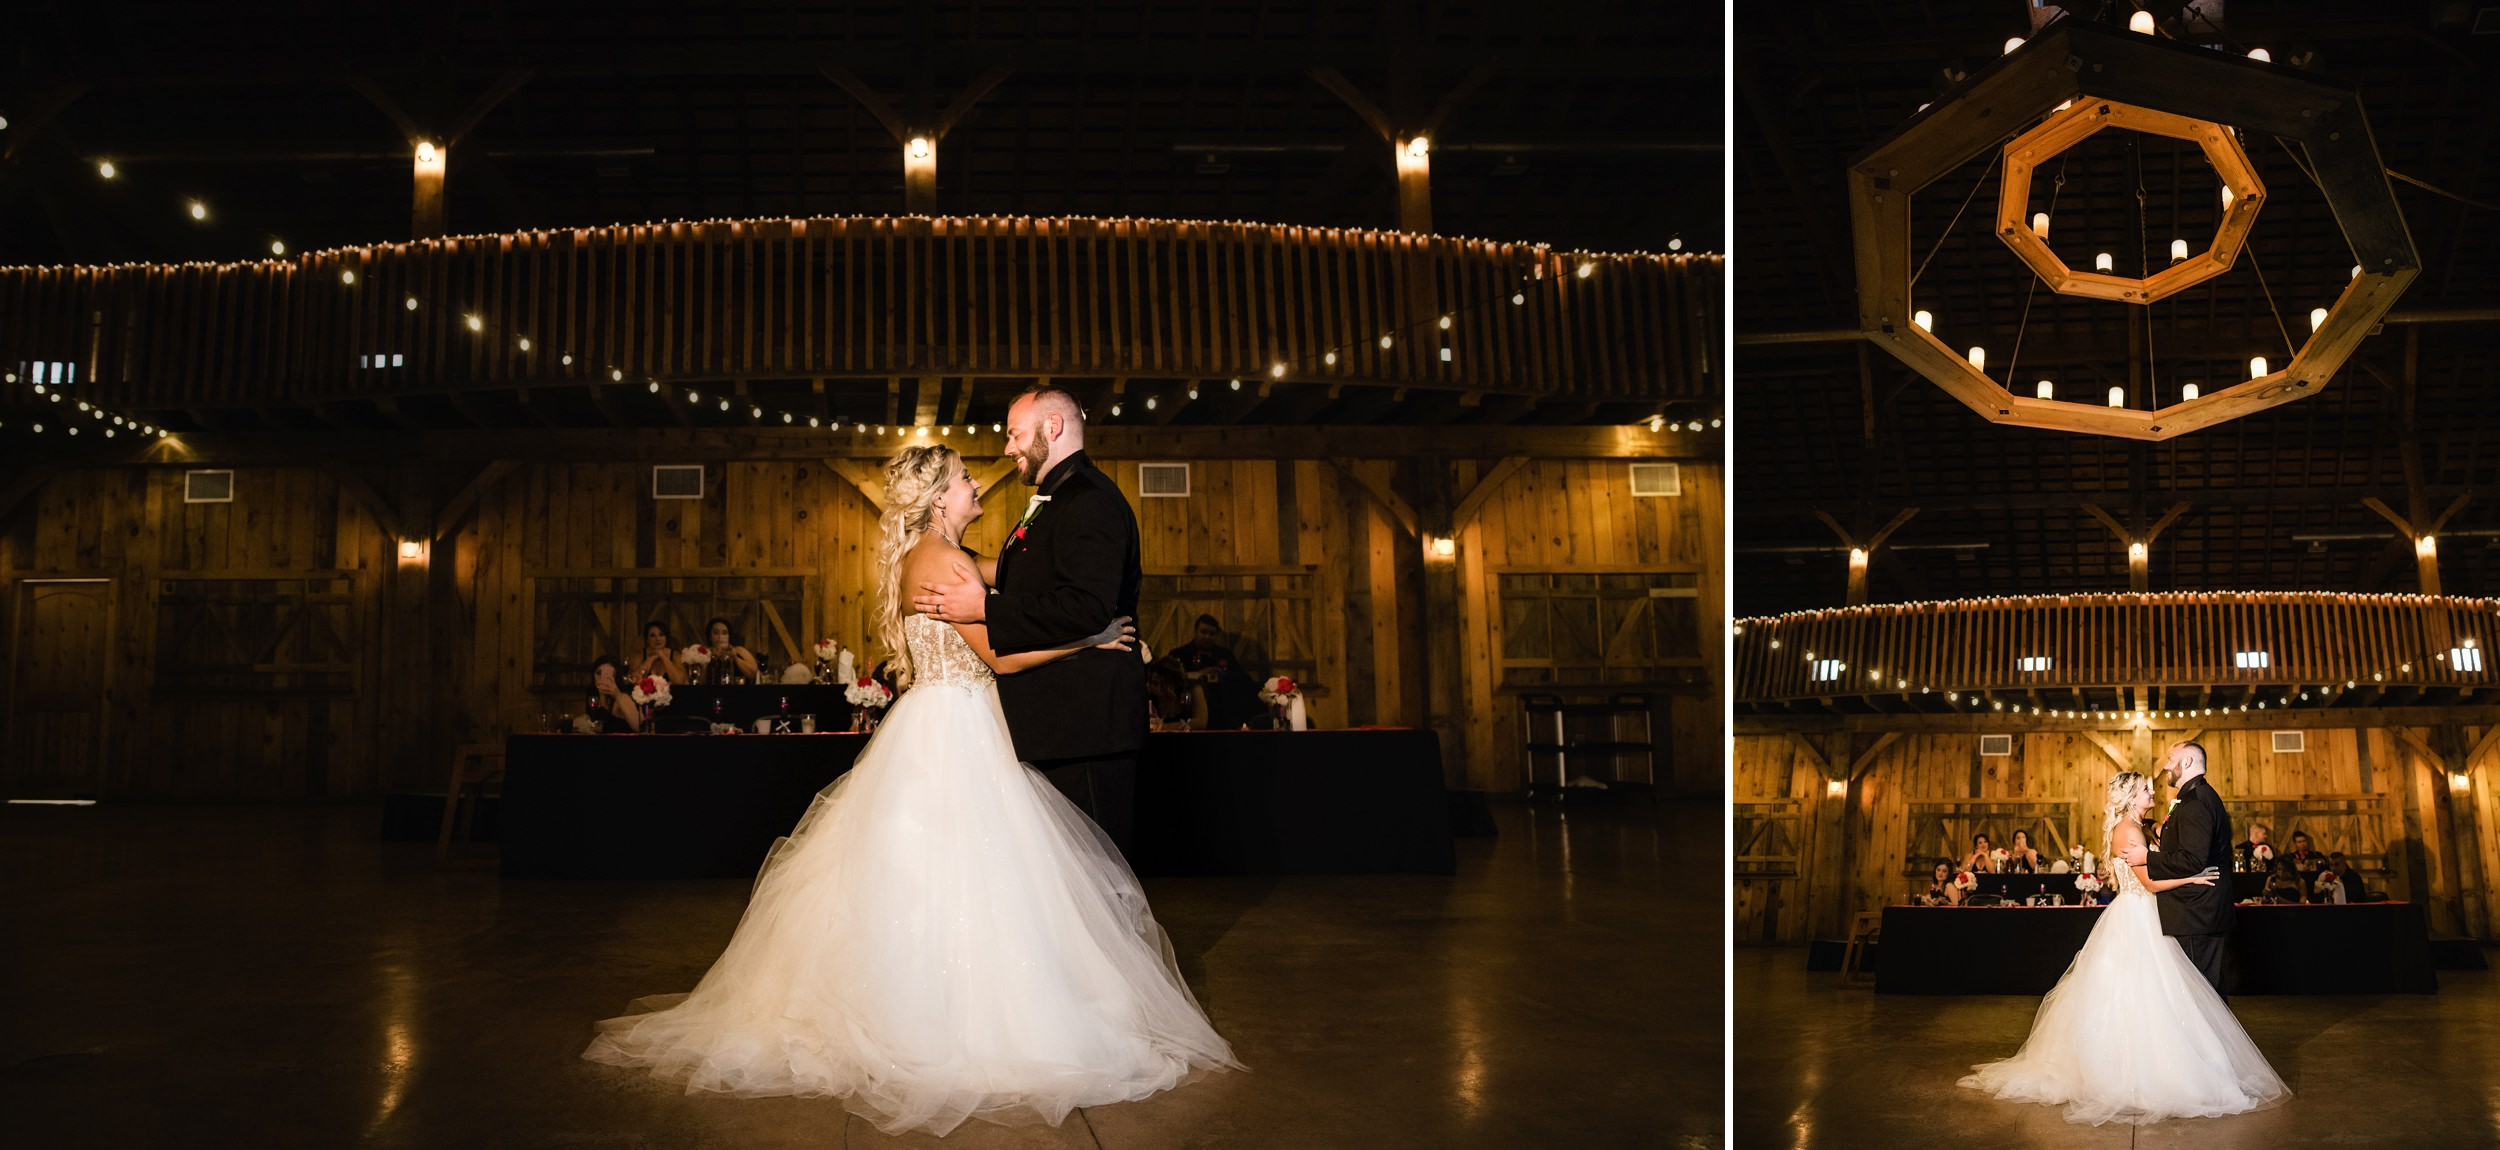 First dances at County Line Orchard.